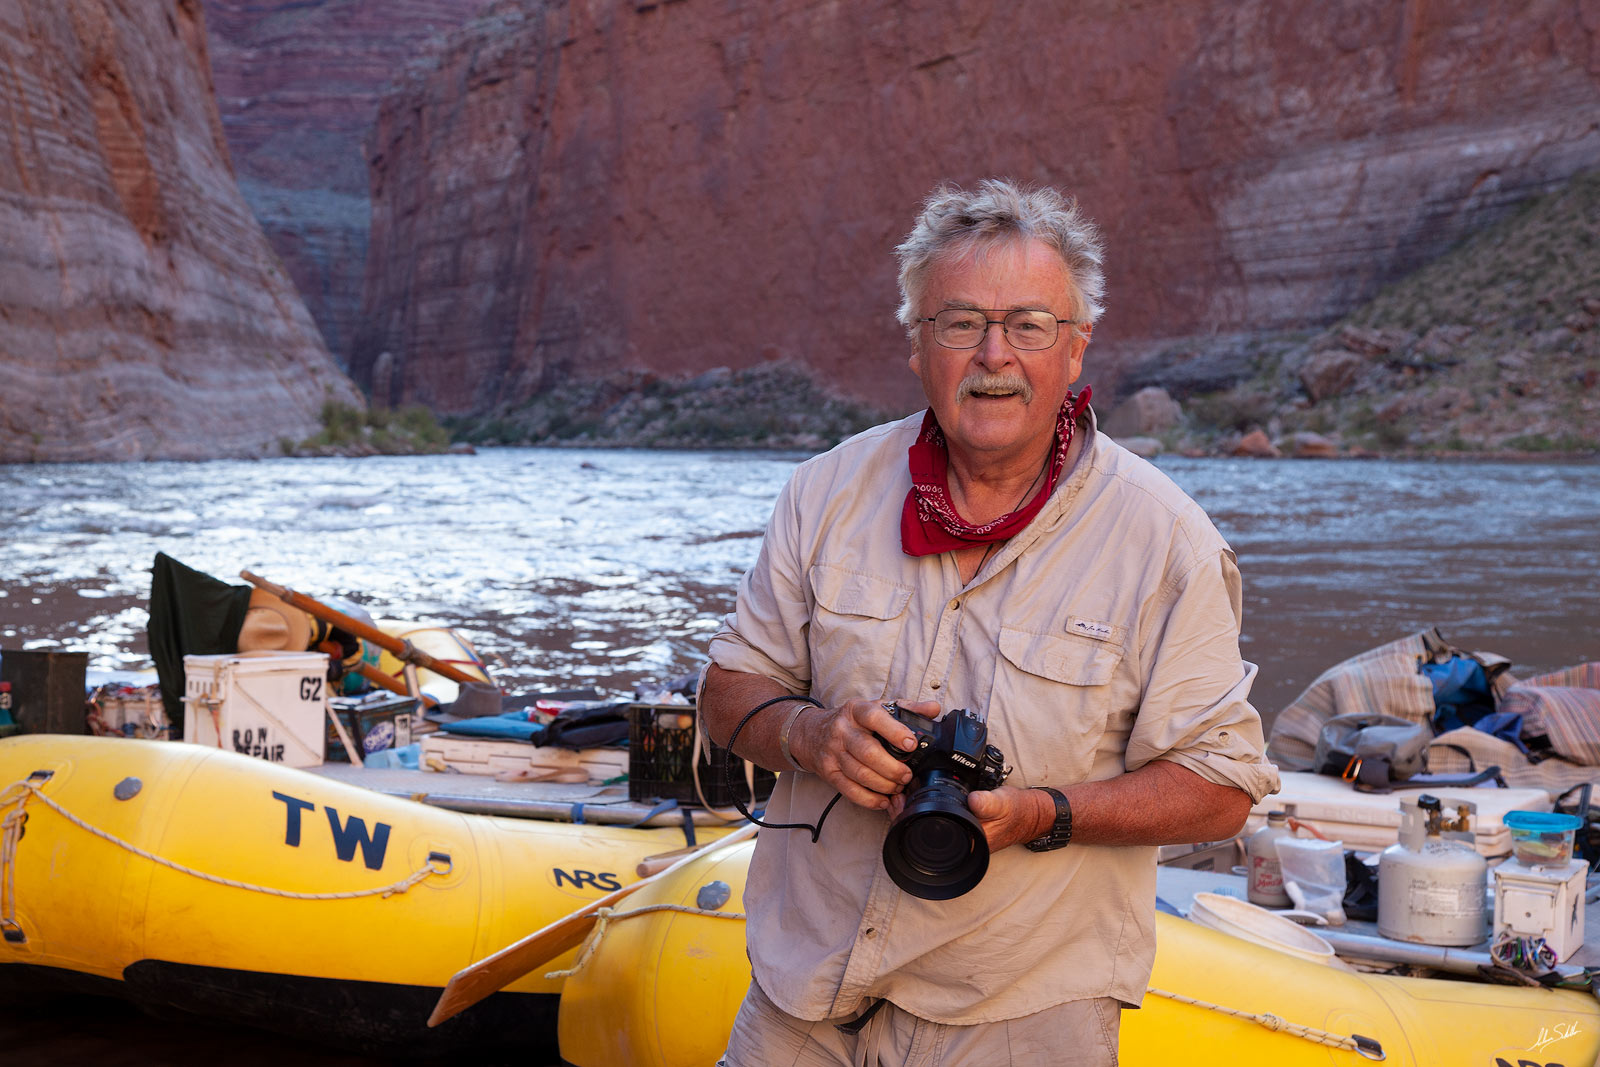 I caught photographer, boatman, and adventurer, David Edwards a bit off-guard but the result was a great smile. David has been...